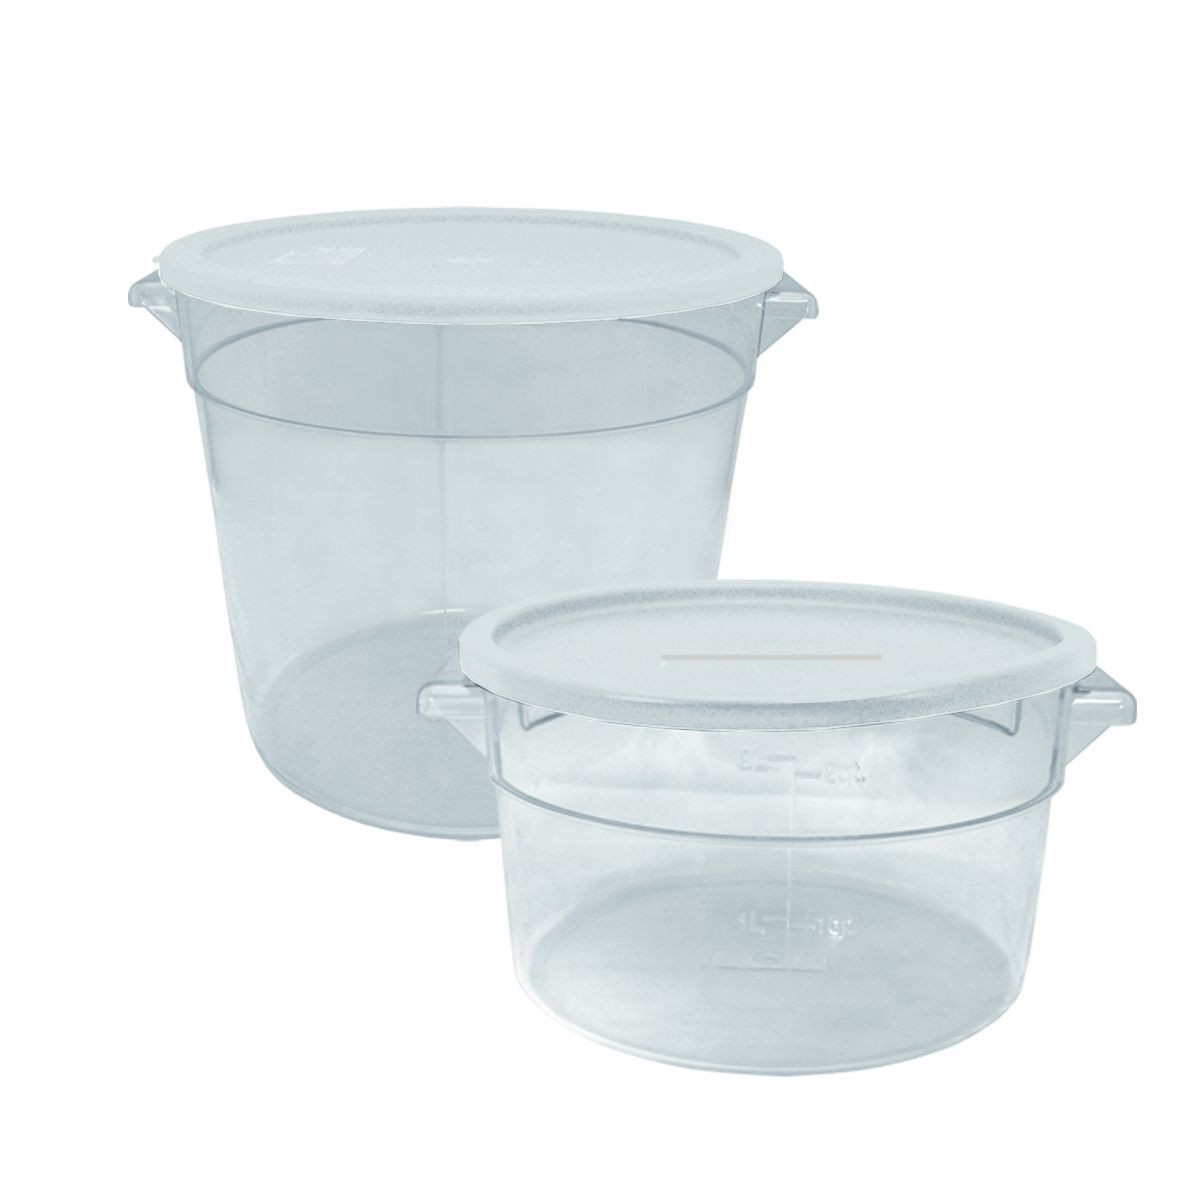 Update International SCRL-LPE White Polycarbonate Cover for 12 to 22 Qt. Round Container